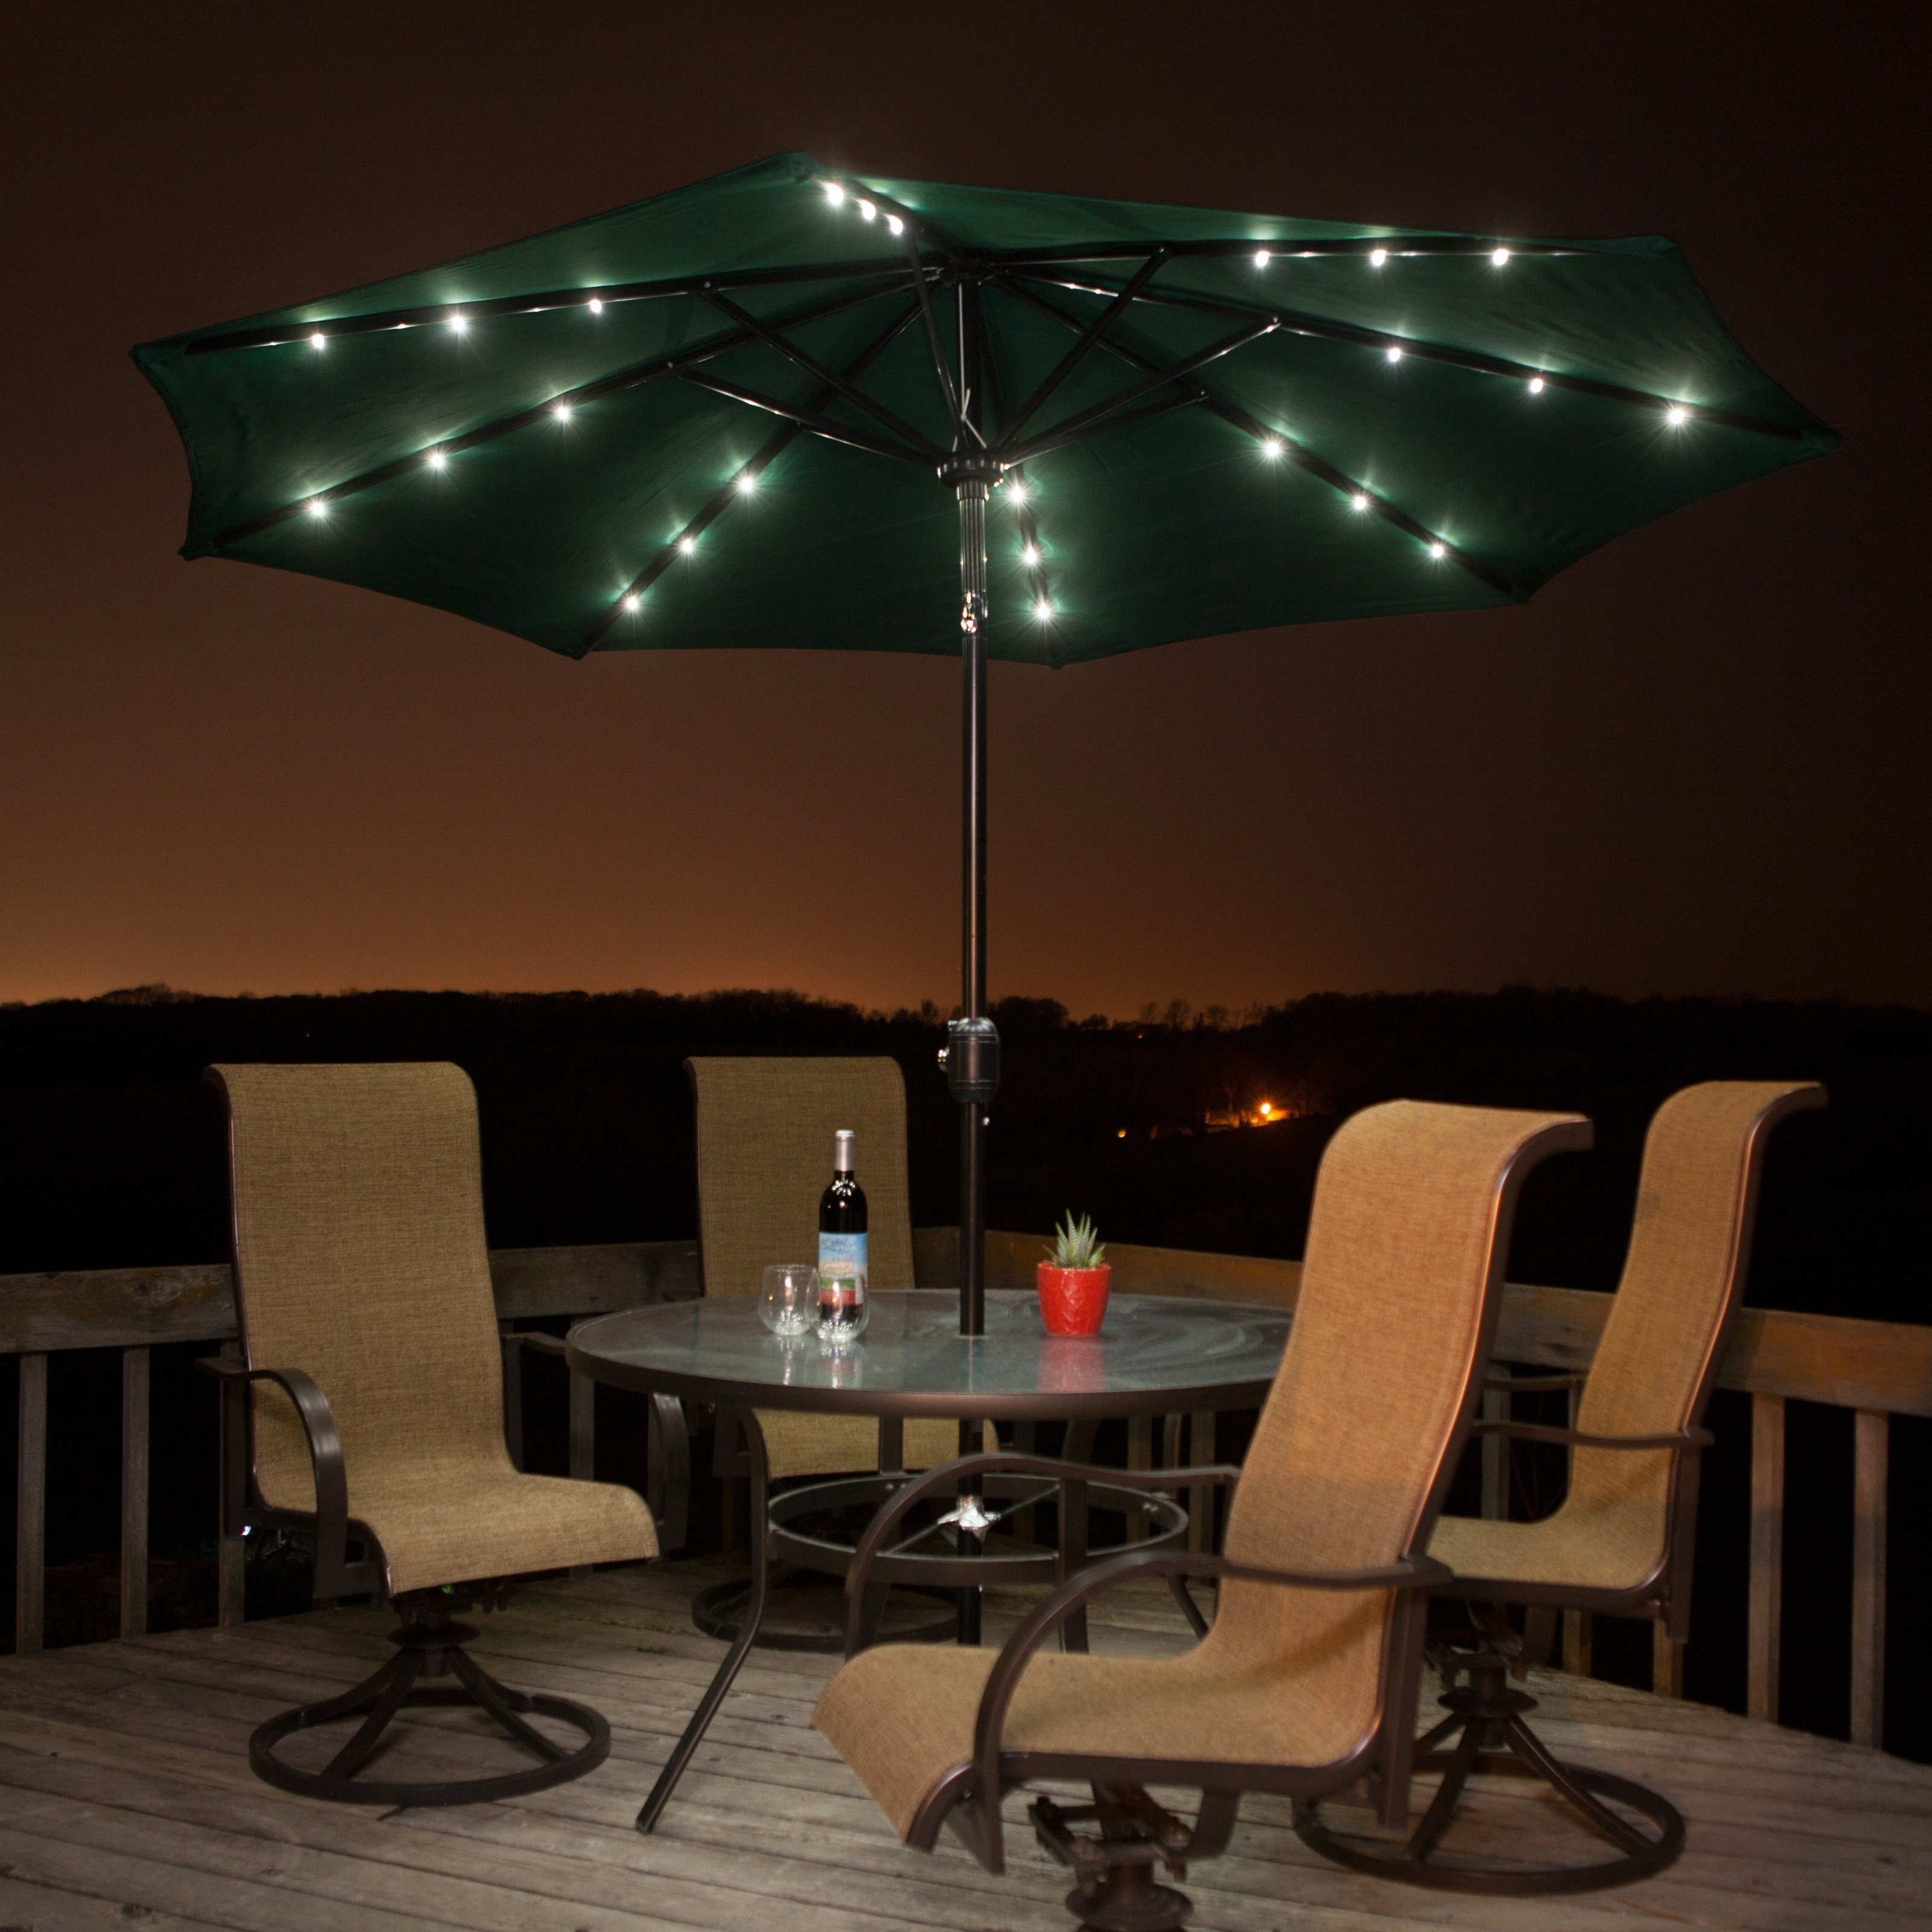 Patio Umbrella Lighting — Mistikcamping Home Design : Different In Well Known Solar Lights For Patio Umbrellas (View 10 of 20)